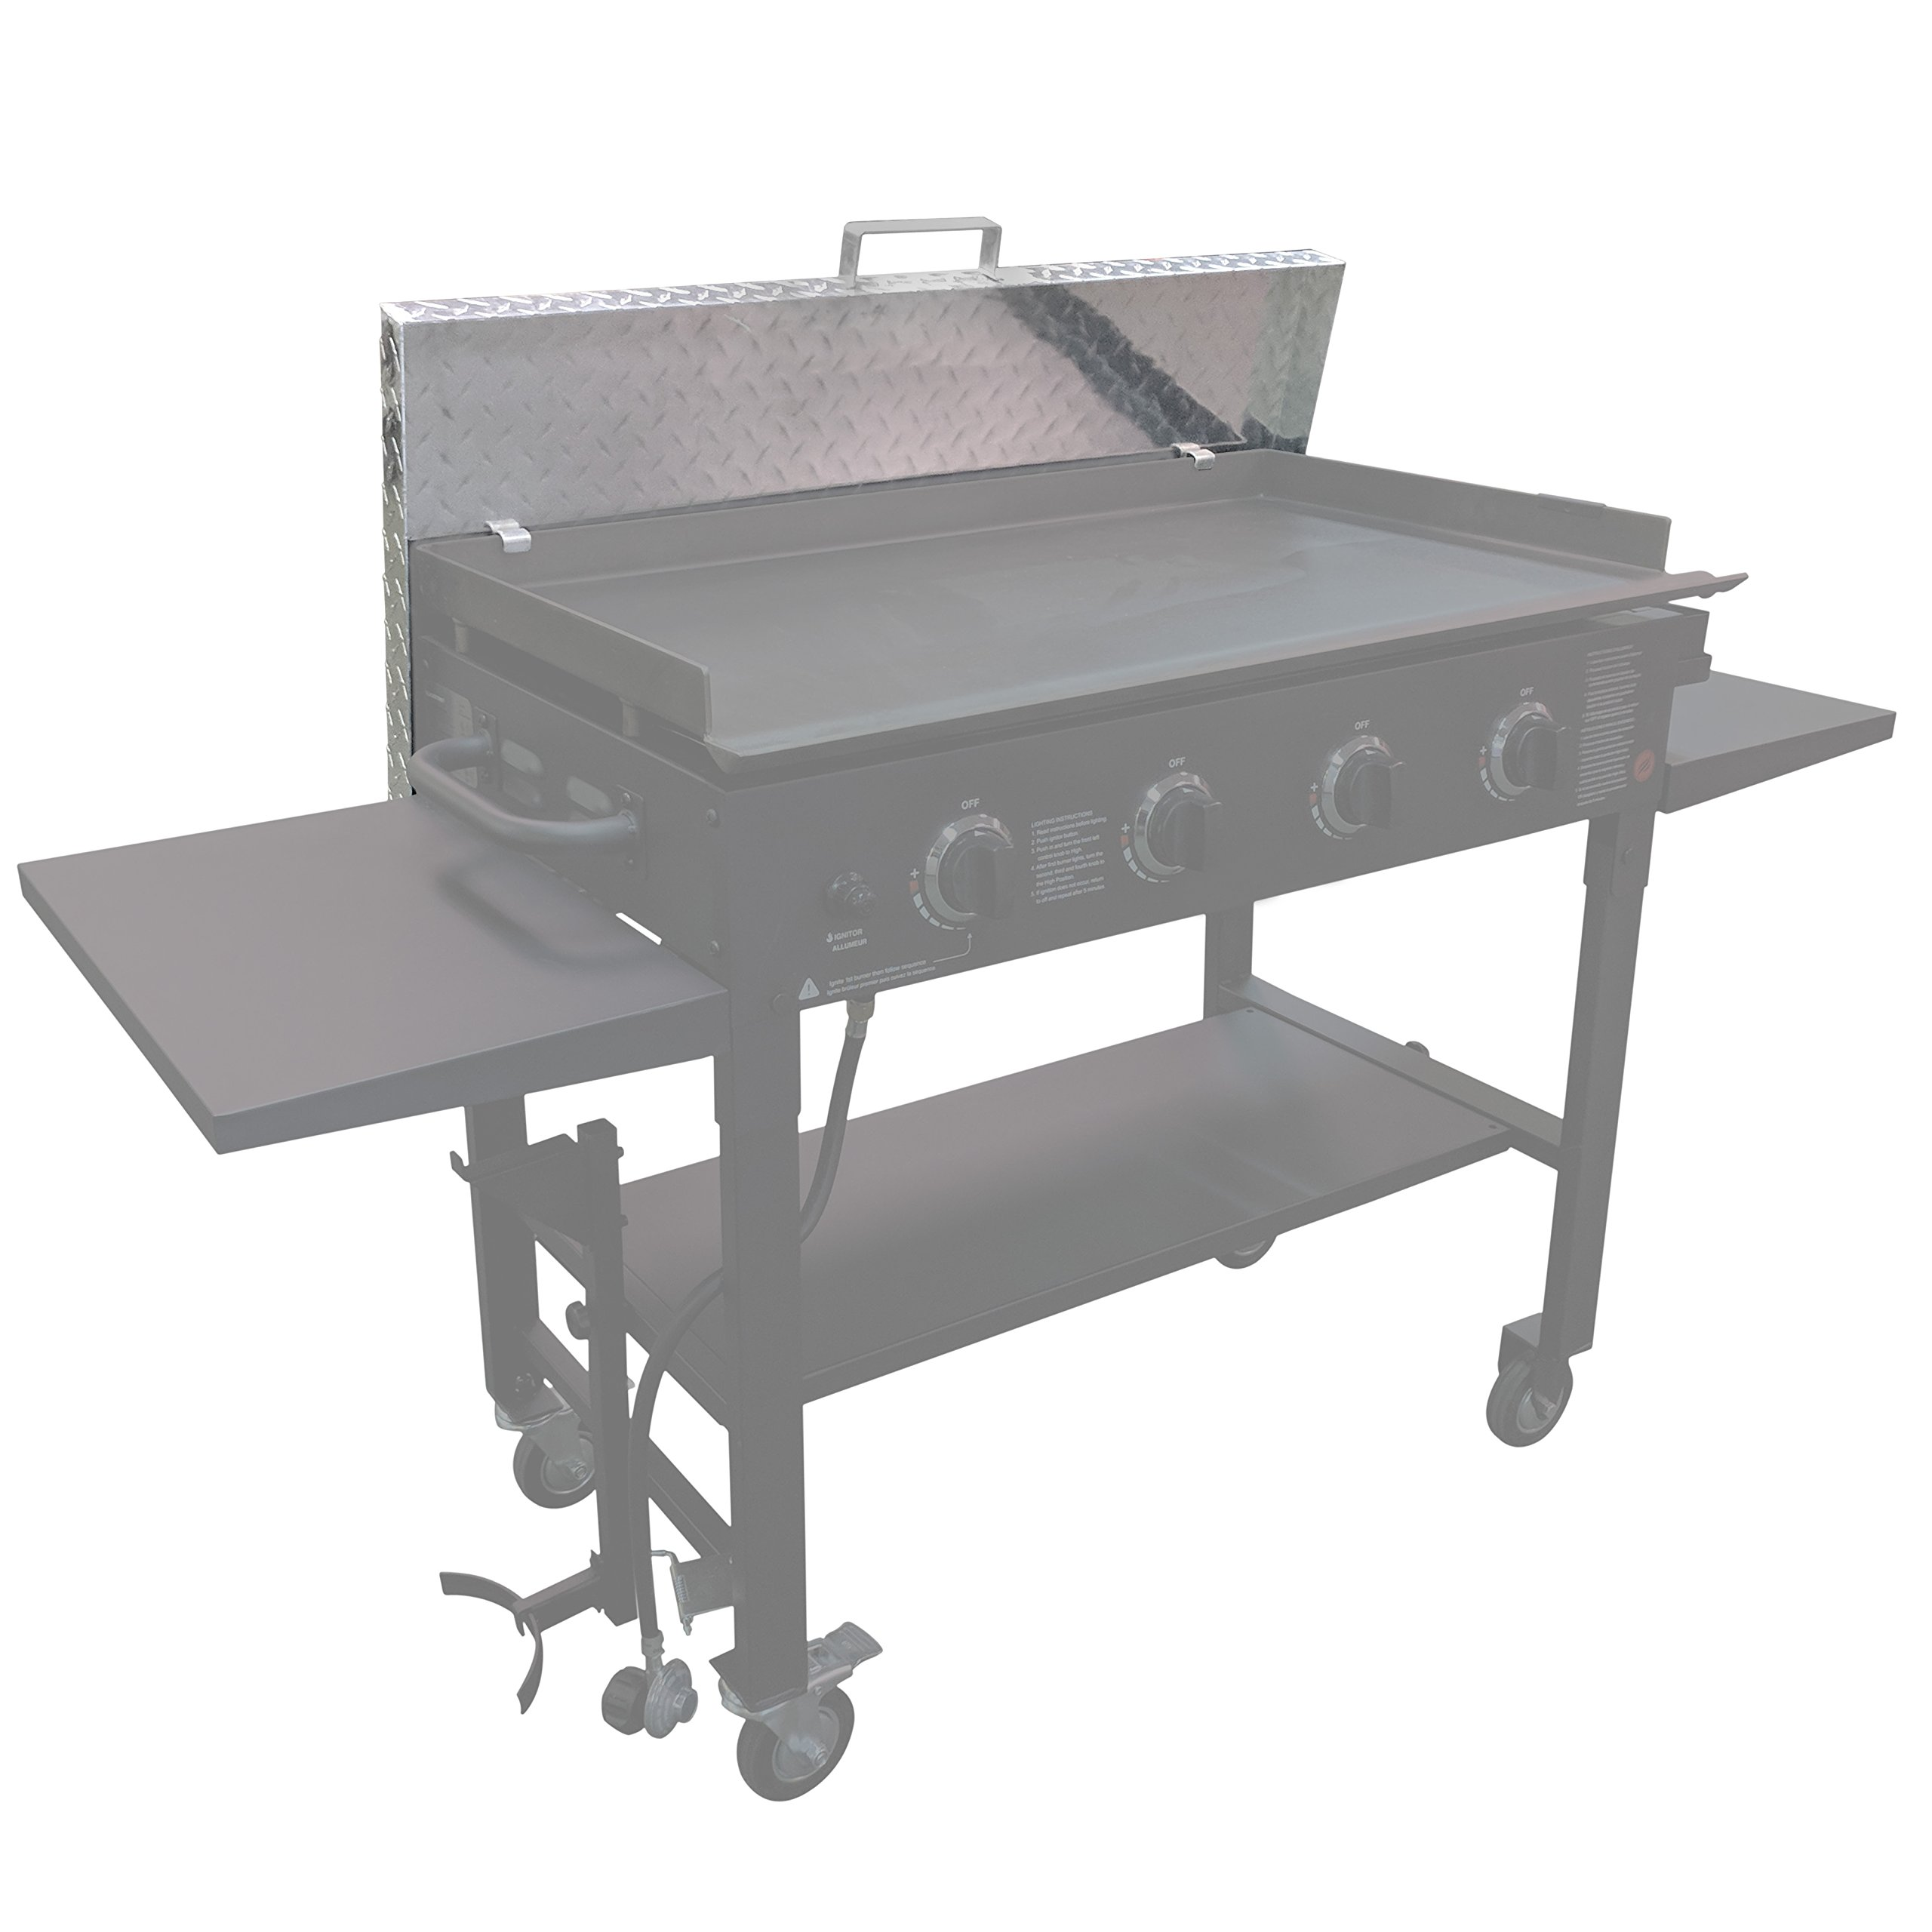 Titan Diamond Plated Aluminum Grill Cover Fits 36'' Blackstone Griddle by Titan Great Outdoors (Image #2)